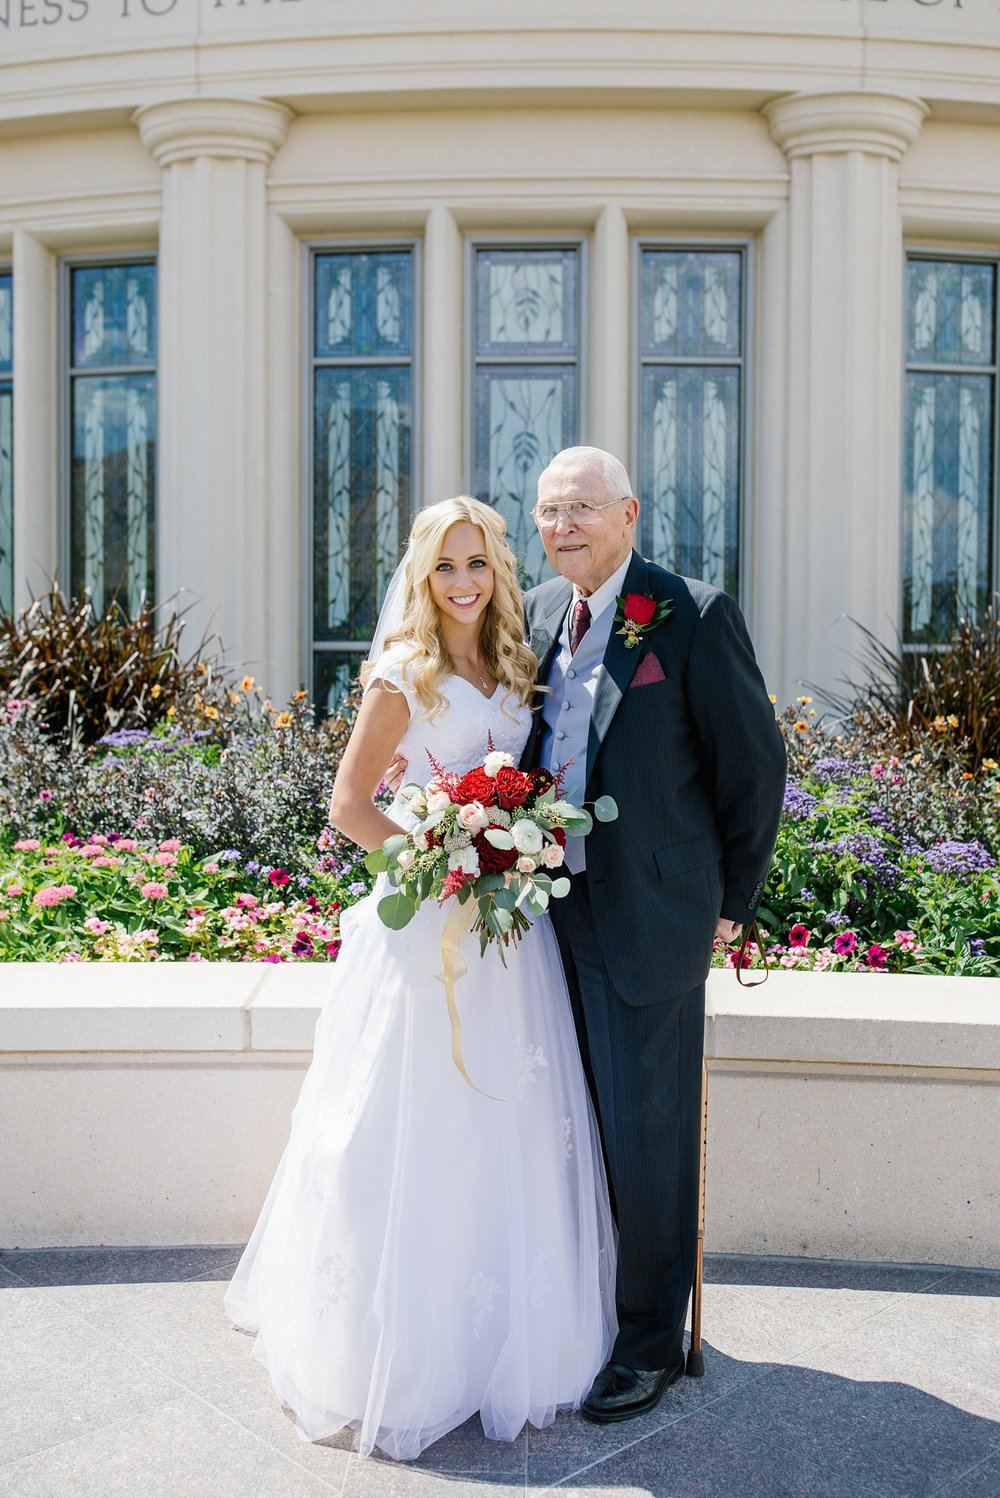 HannahChaseWedding-38_Lizzie-B-Imagery-Utah-Wedding-Photographer-Bridal-Photography-Payson-Utah-Temple-Clarion-Gardens-Catering-and-Events-Center.jpg